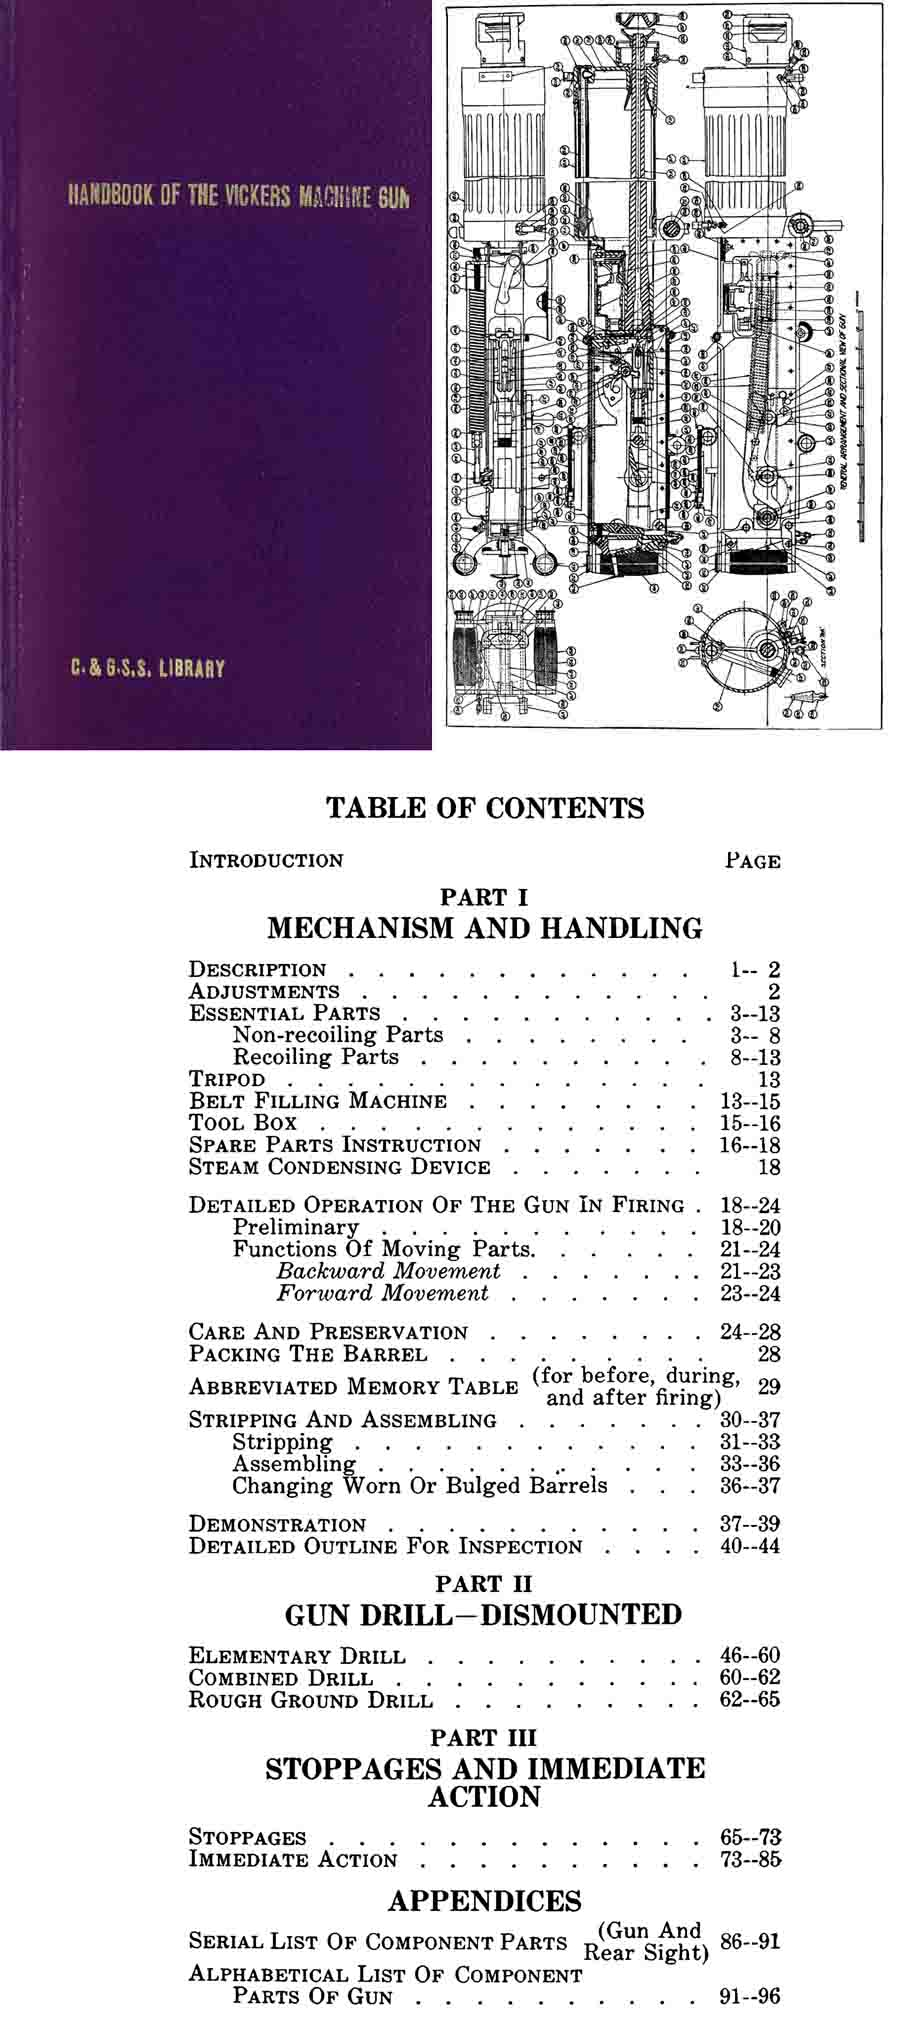 Vickers M1915 Machine Gun Handbook April, 1918